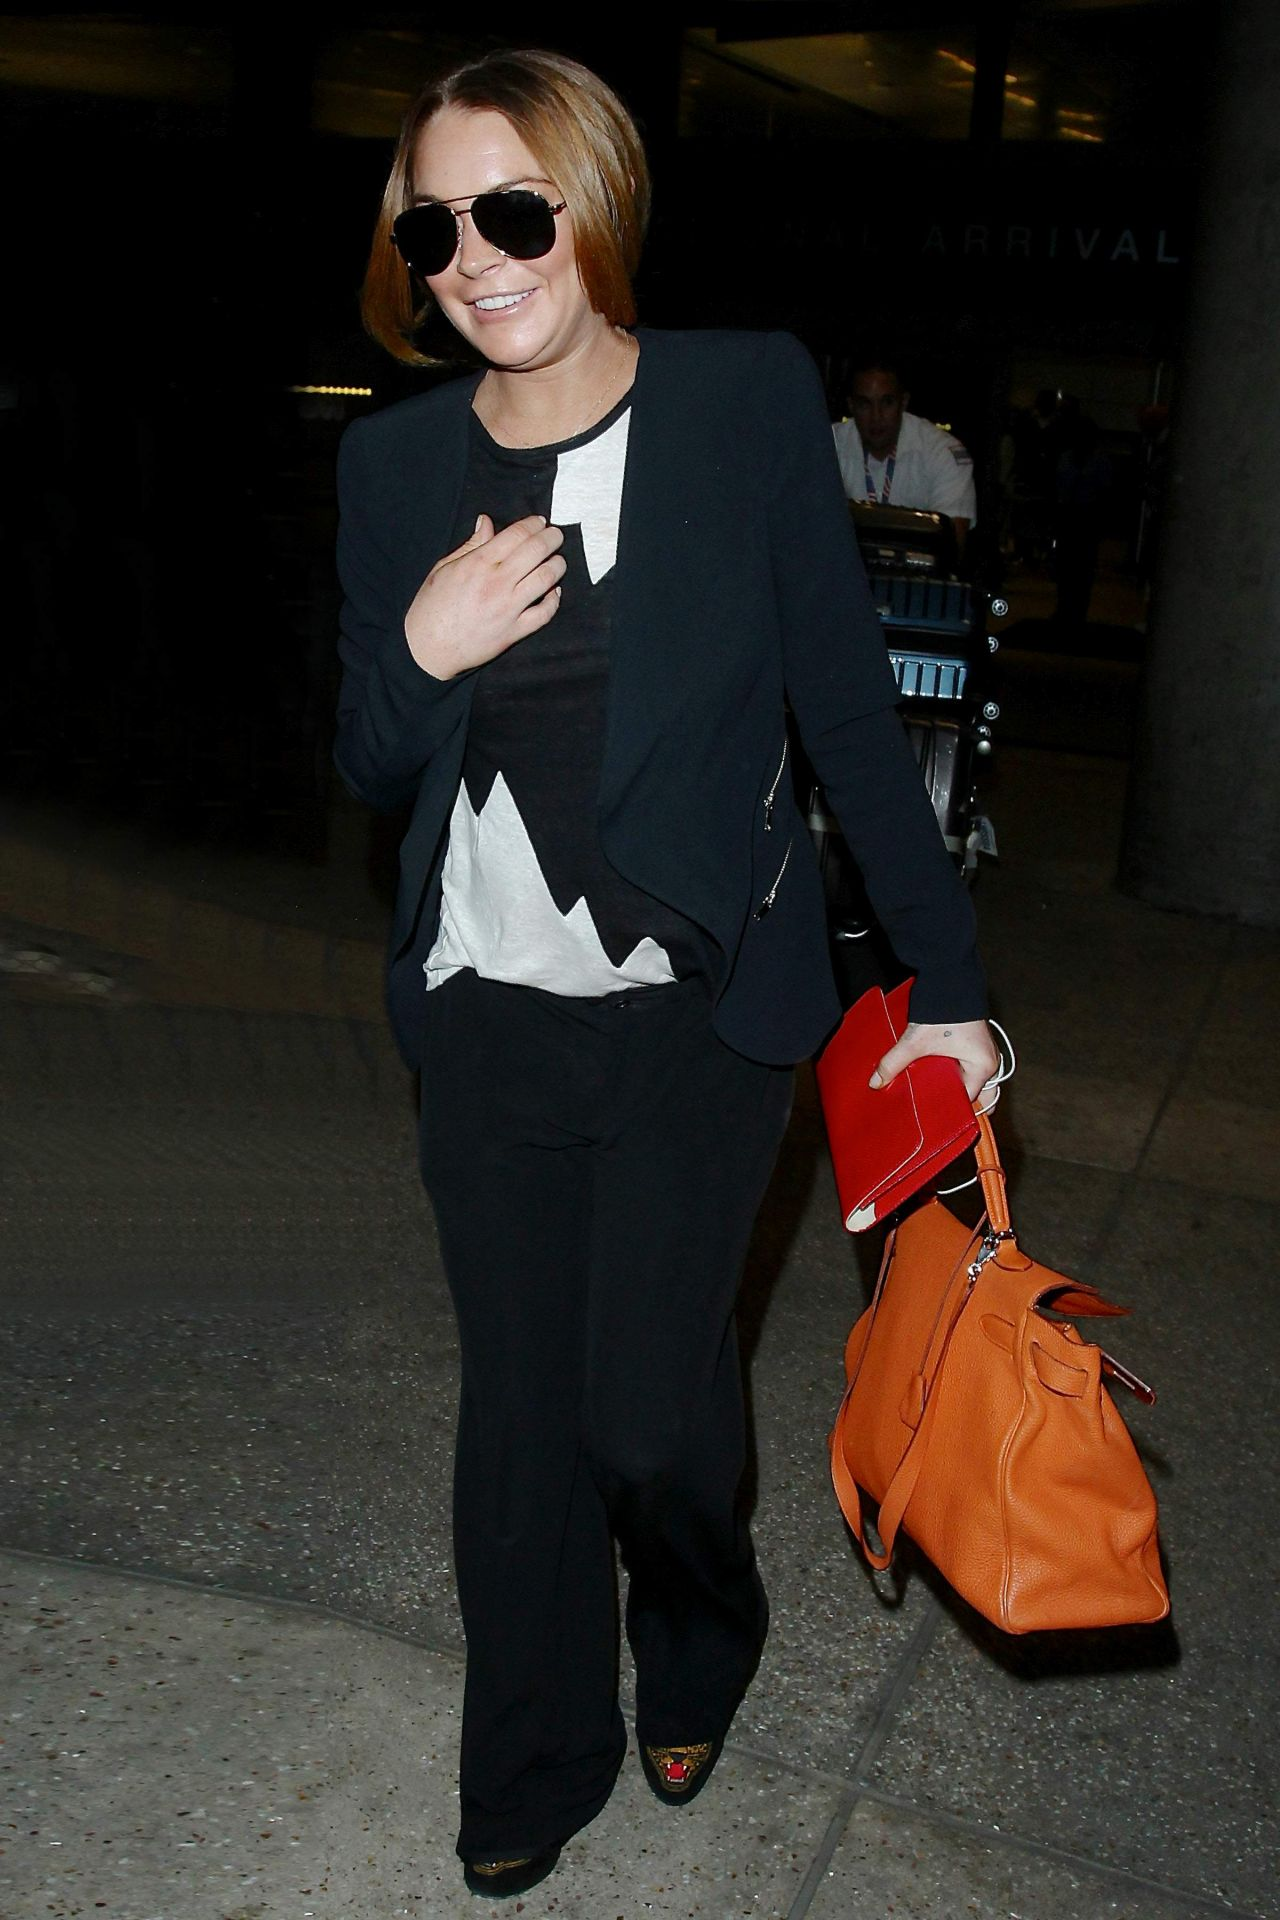 Lindsay Lohan Arriving on a flight at LAX Airport in Los Angeles – December 2014